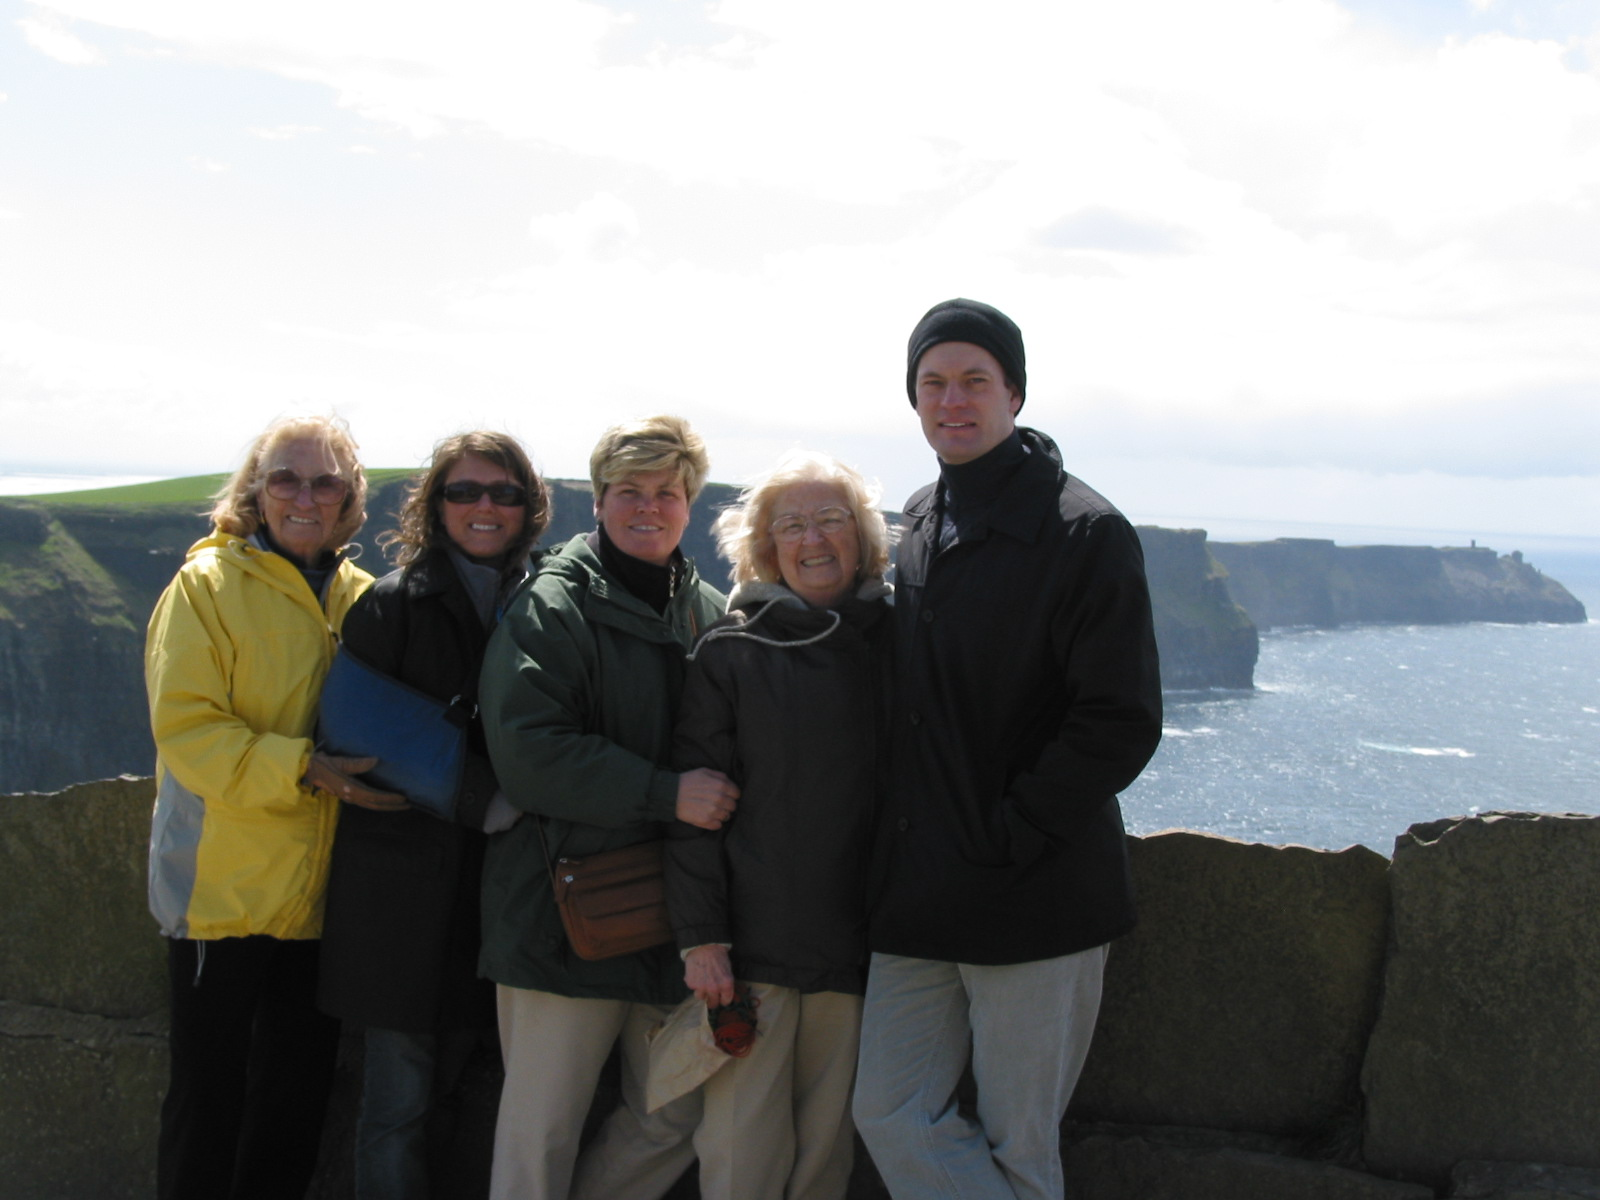 Cliffs of Moher, Nana, me, Aunt Maddie, Great Aunt Pat, Cousin Odie (missing is my Aunt Debbie taking the photograph, sorry Aunt Debbie!!!) Smile. April 2004